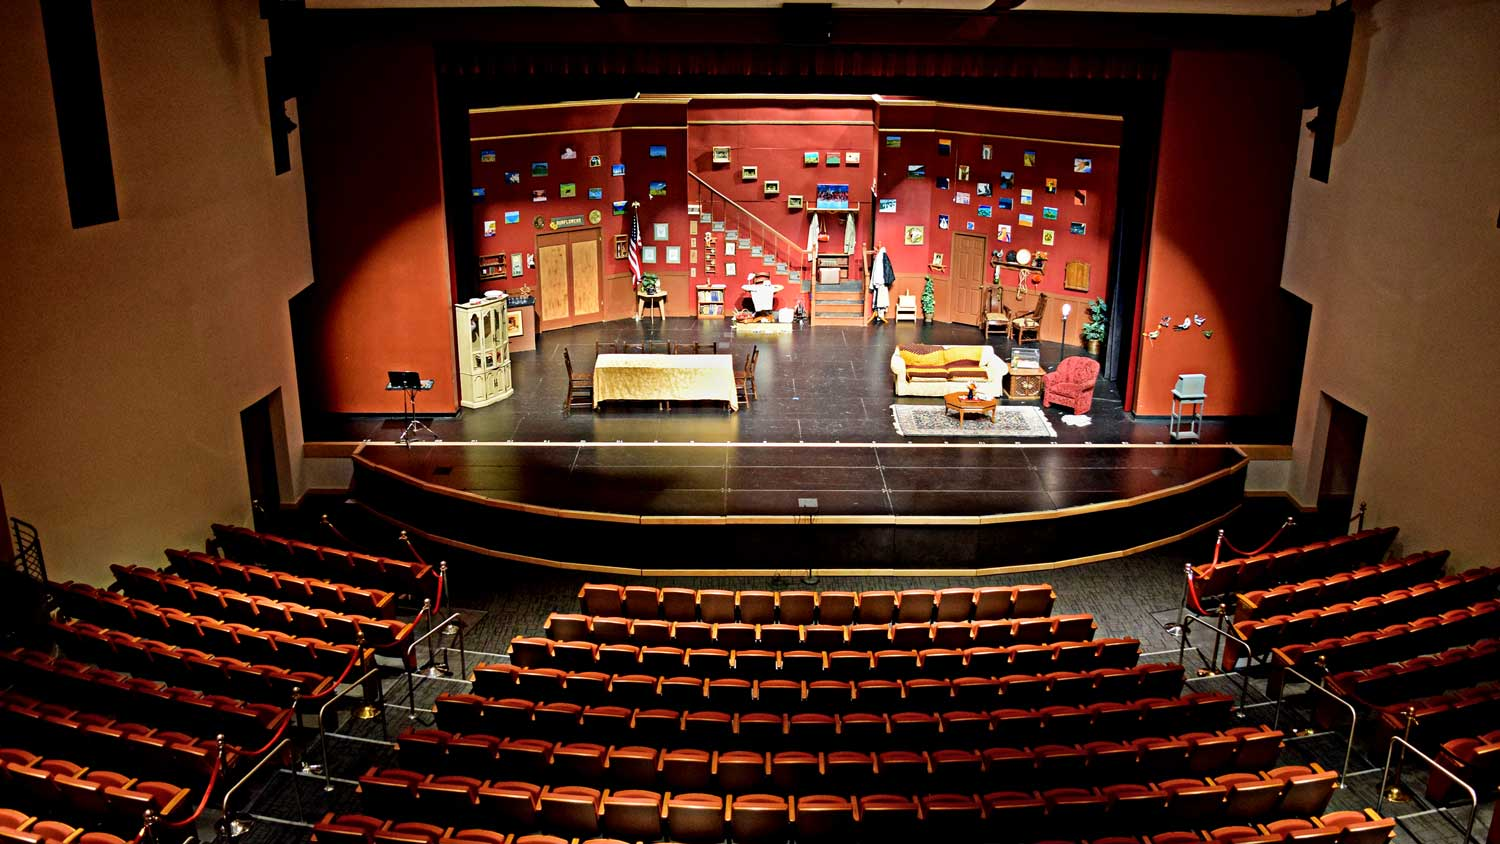 The Importance of School Theatre